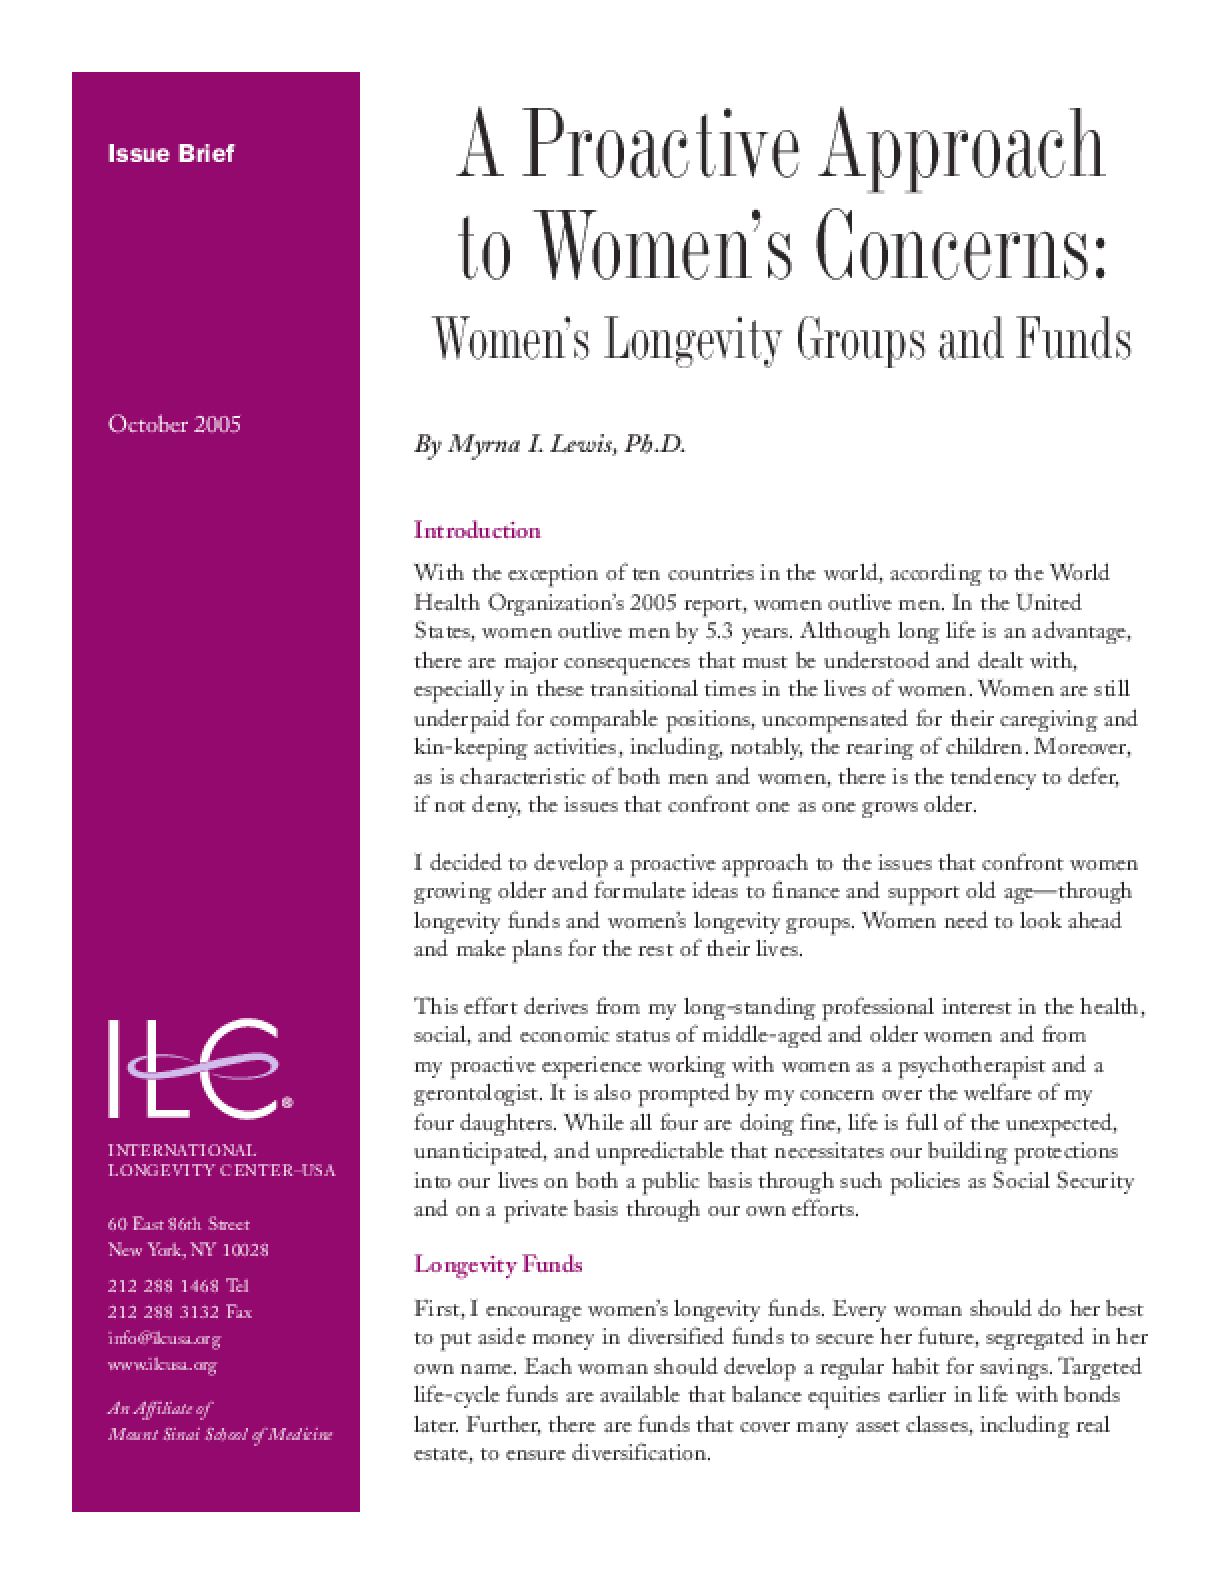 A Proactive Approach to Womens Concerns: Womens Longevity Groups and Funds